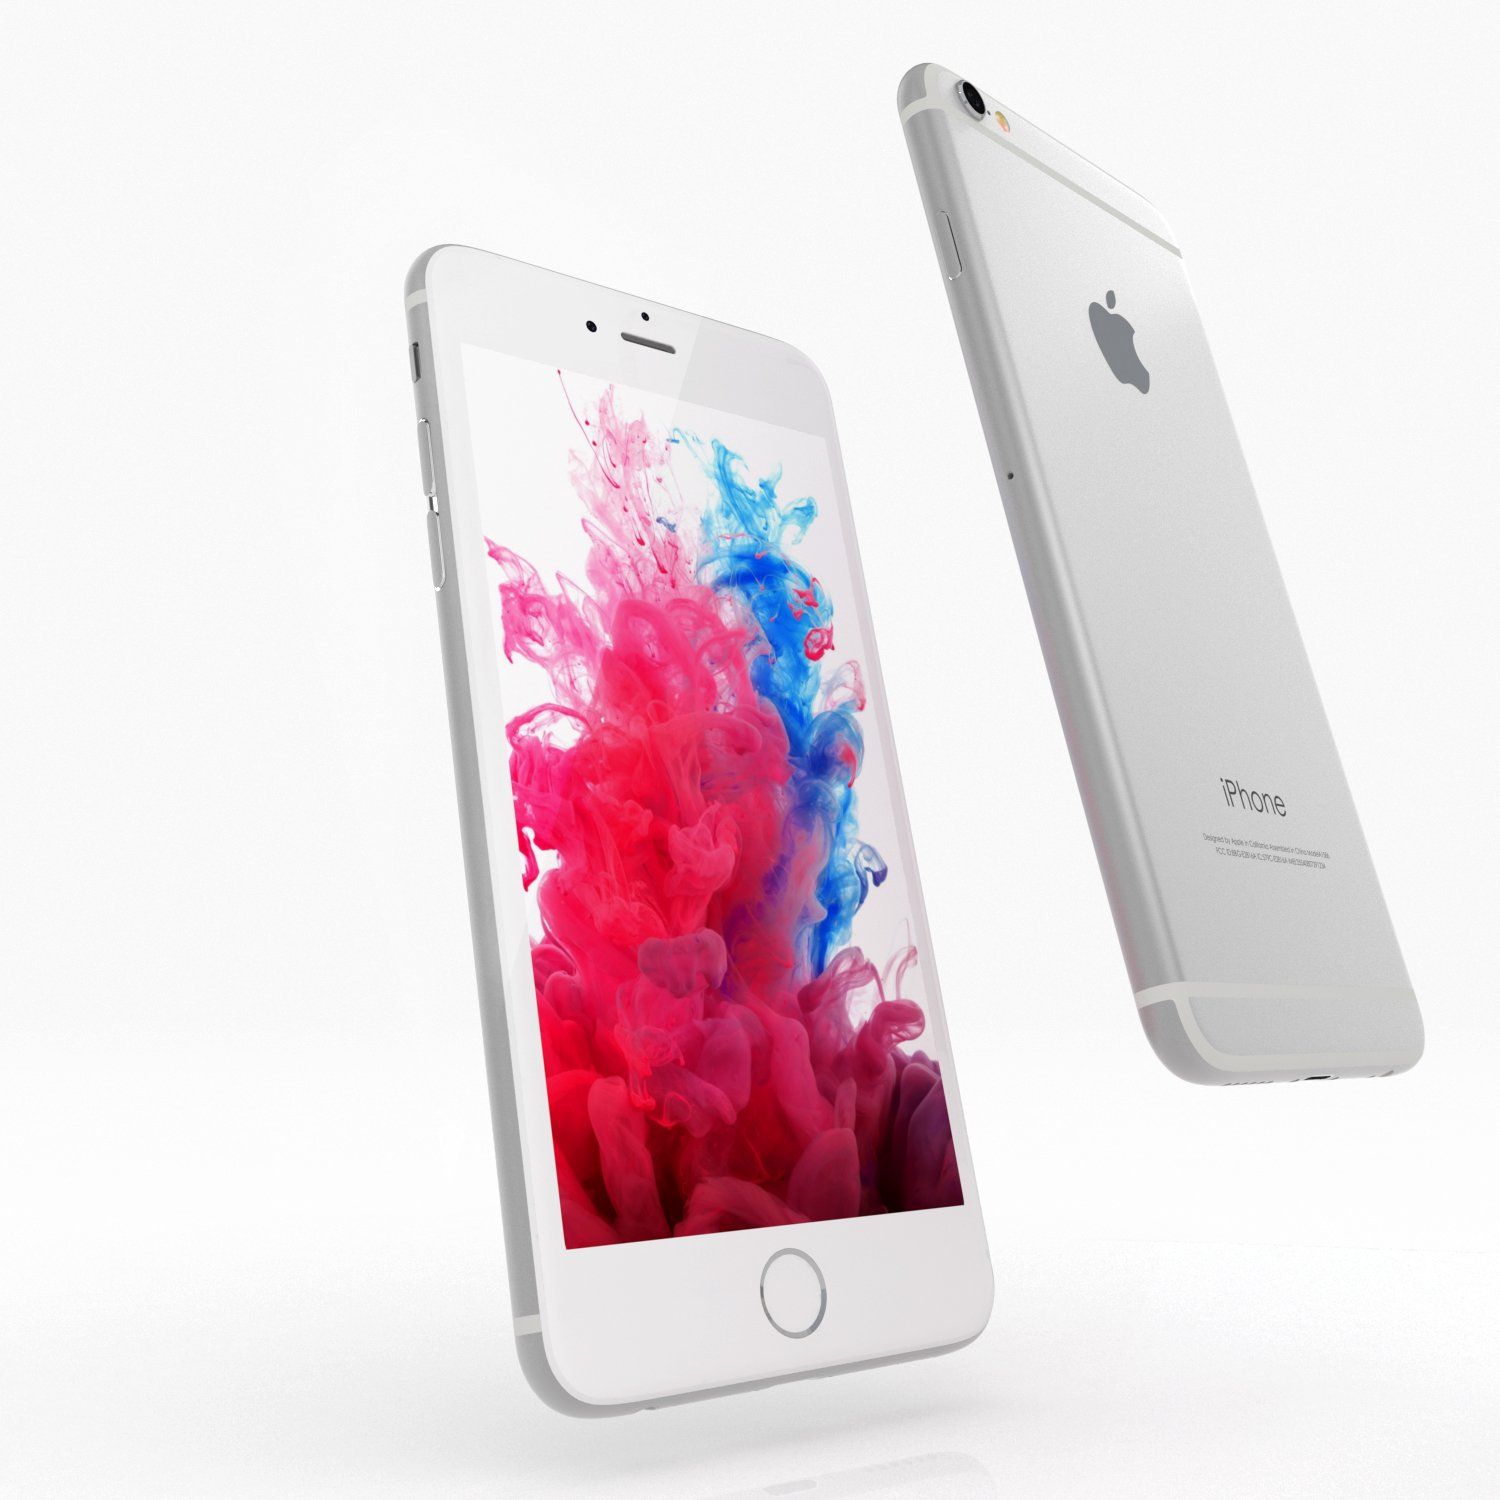 Apple Iphone 6 Fully Unlocked 16gb Silver 64gb Refrubish Free Tempered Glass Refurbished Cell Phones Accessories